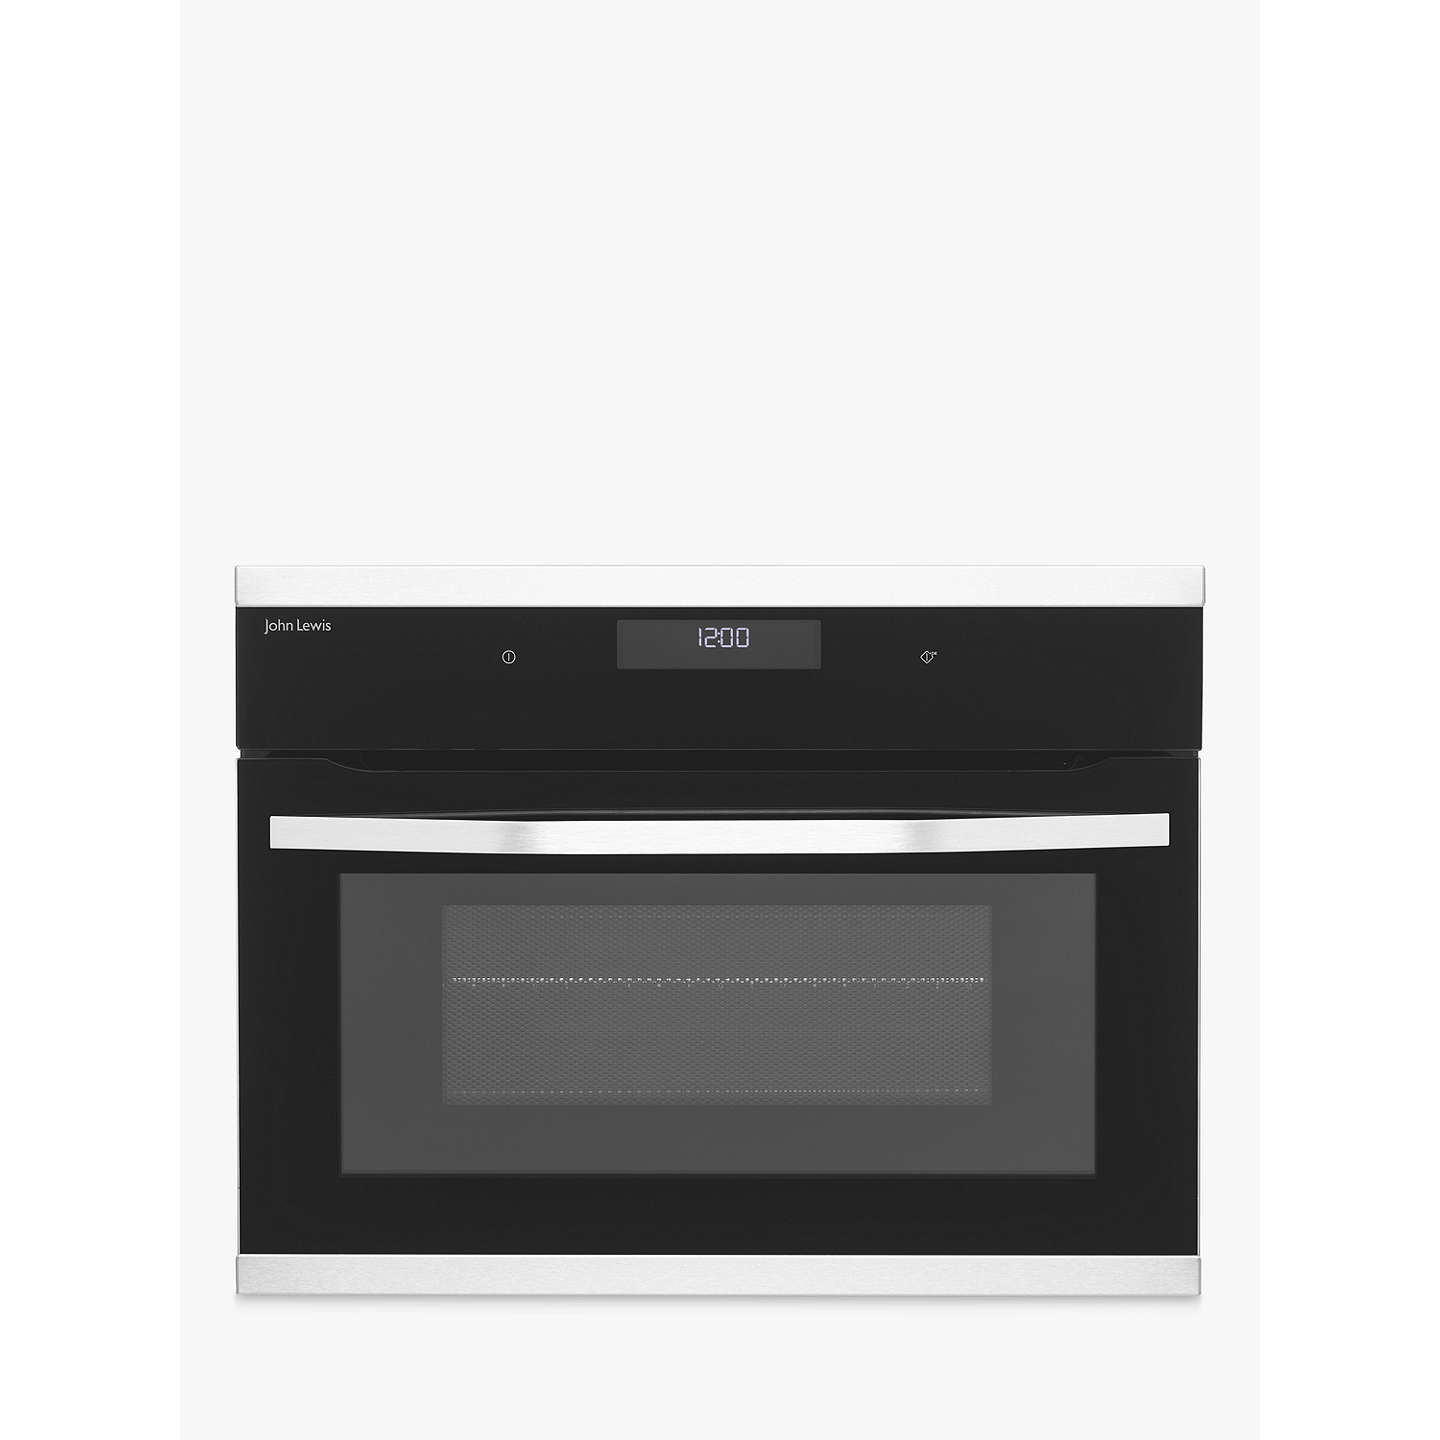 John Lewis JLBICO431 Built-in Combination Microwave Oven, Black ...